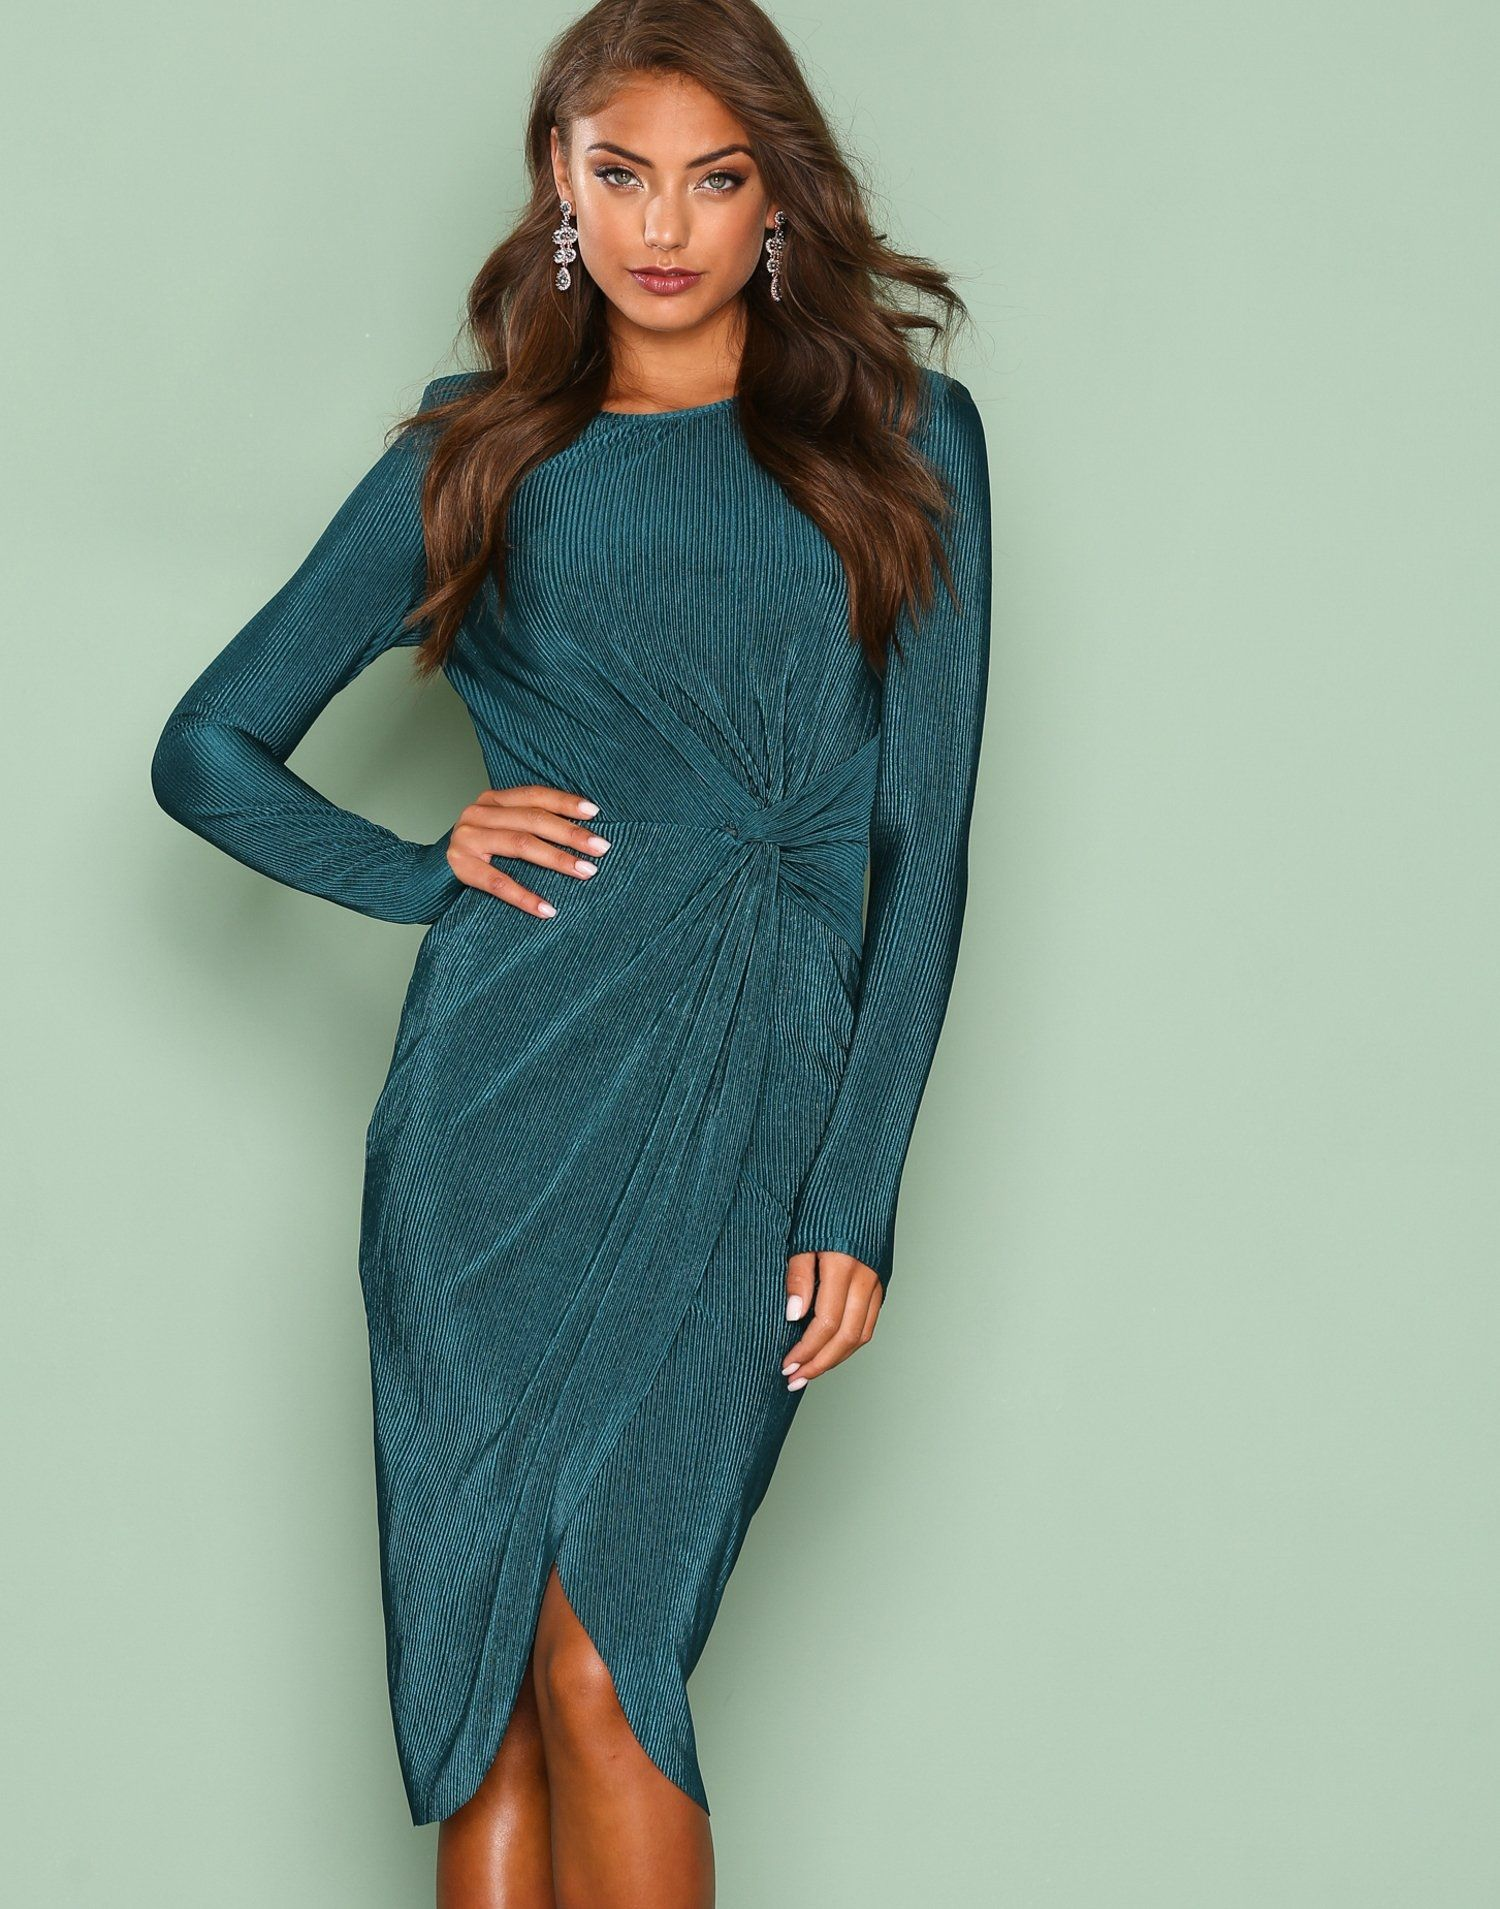 45b2843caa40 Padded Pleated Dress | Handling | The Office, New party dress, Party ...